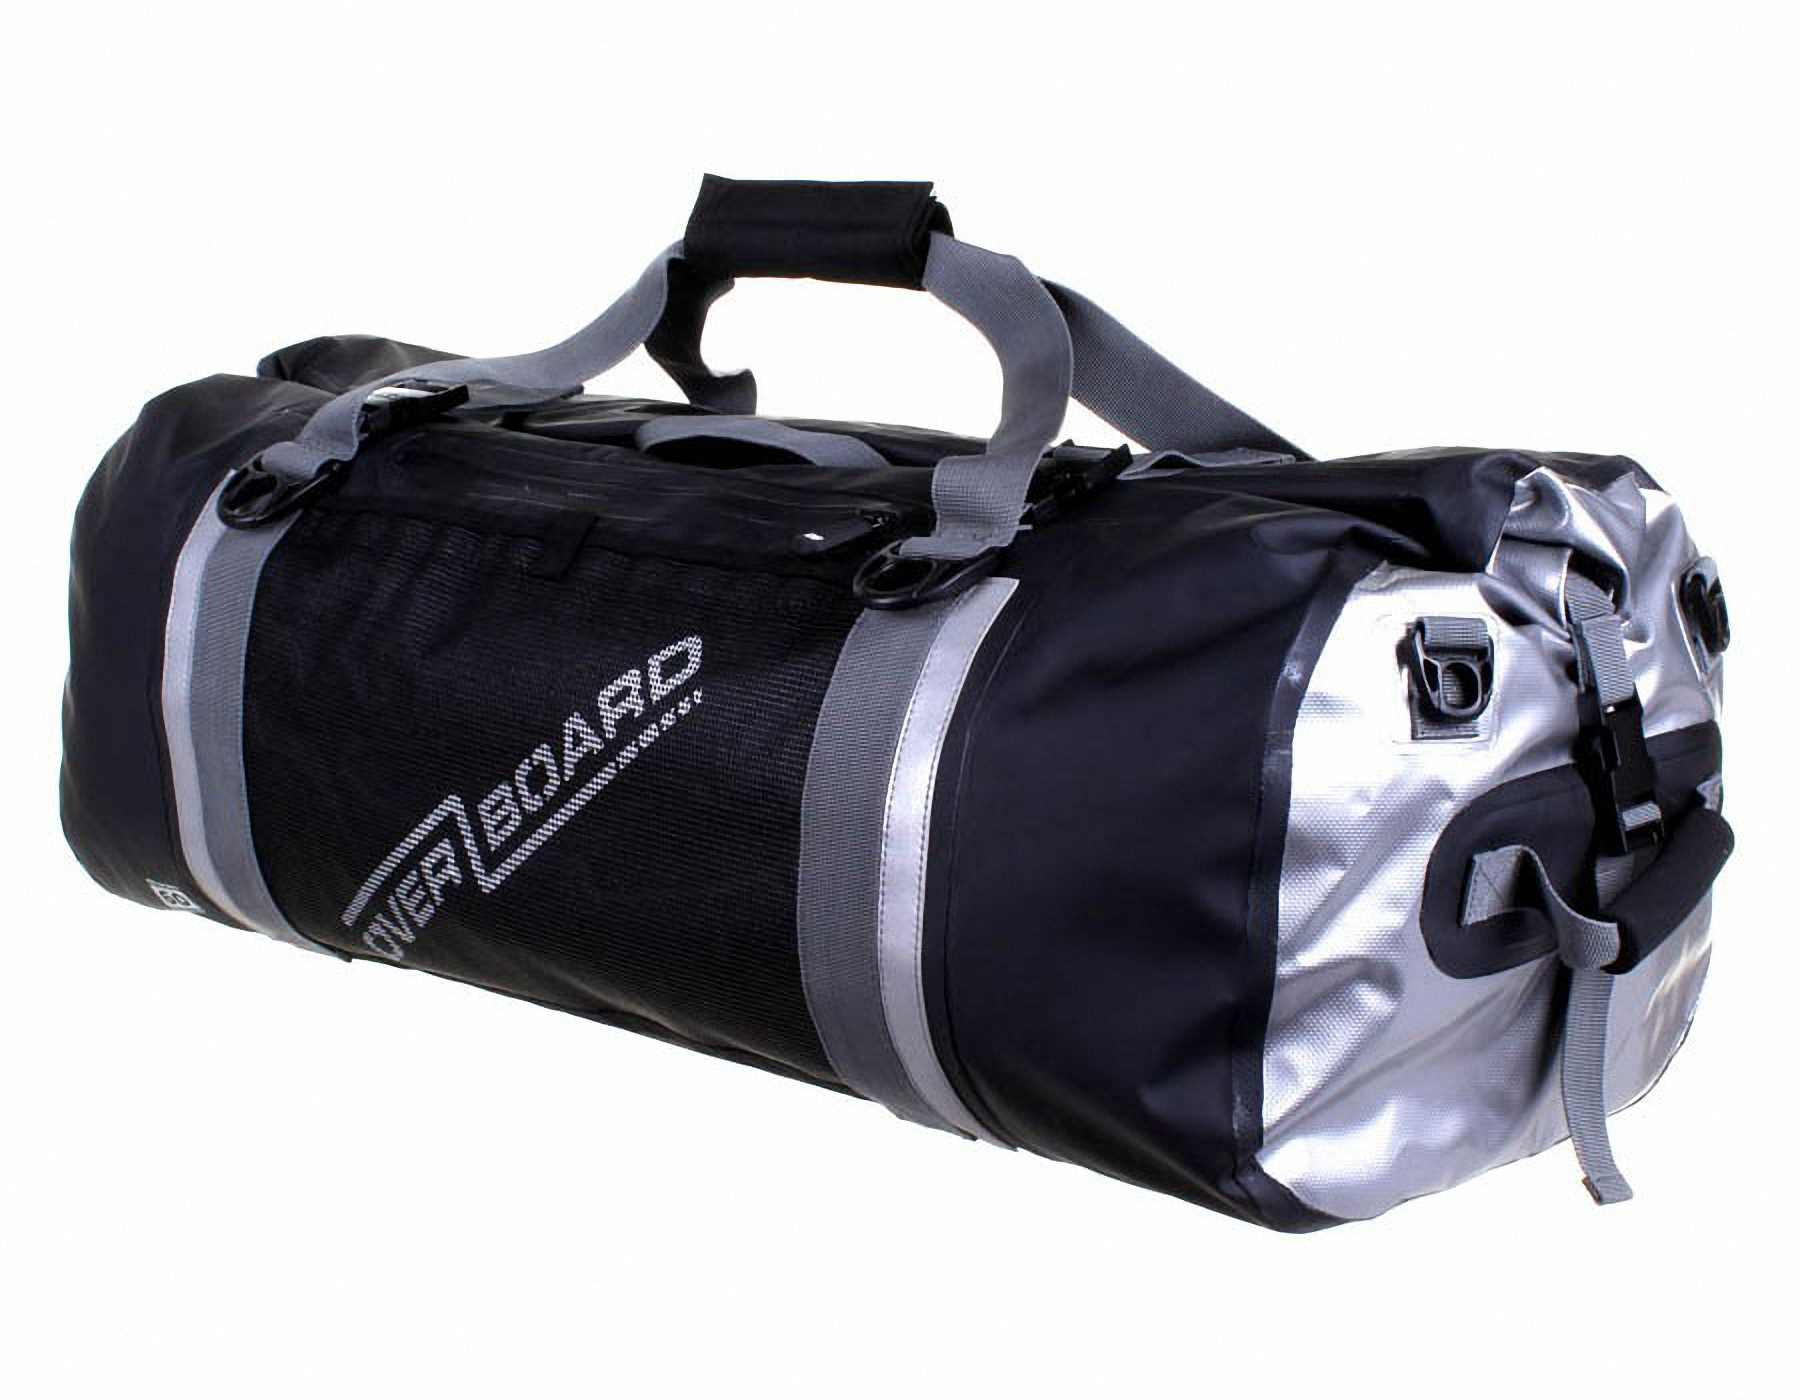 Водонепроницаемая сумка OverBoard OB1154BLK - Pro-Sports Waterproof Duffel Bag - 60 литров.  Фото 1